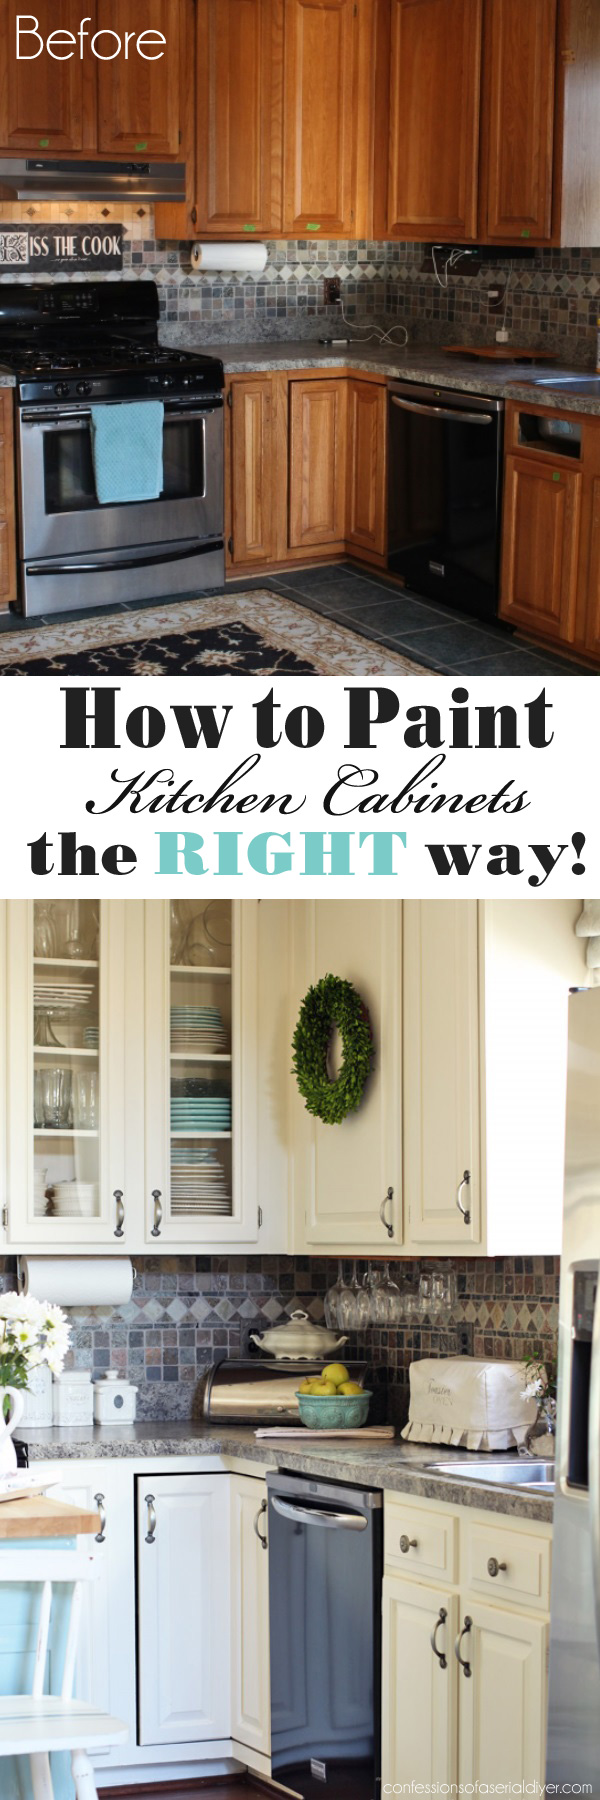 diy kitchen cabinet appliances for restaurant how to paint cabinets a step by guide the right way from confessions of serial do it